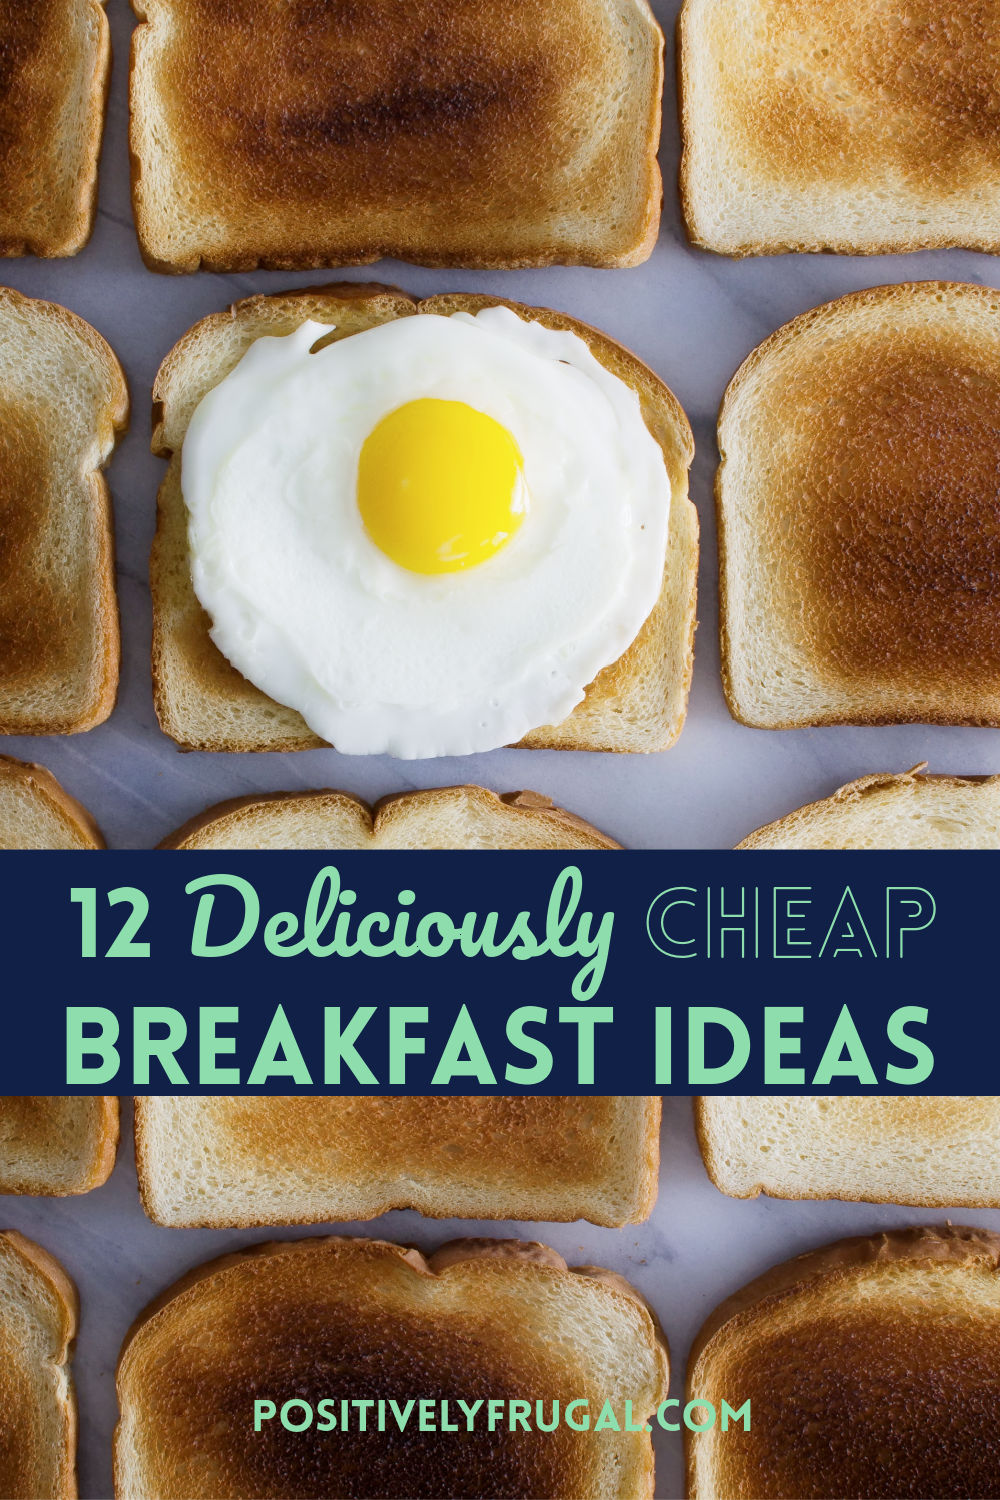 Delicously Cheap Breakfast Ideas by PositivelyFrugal.com